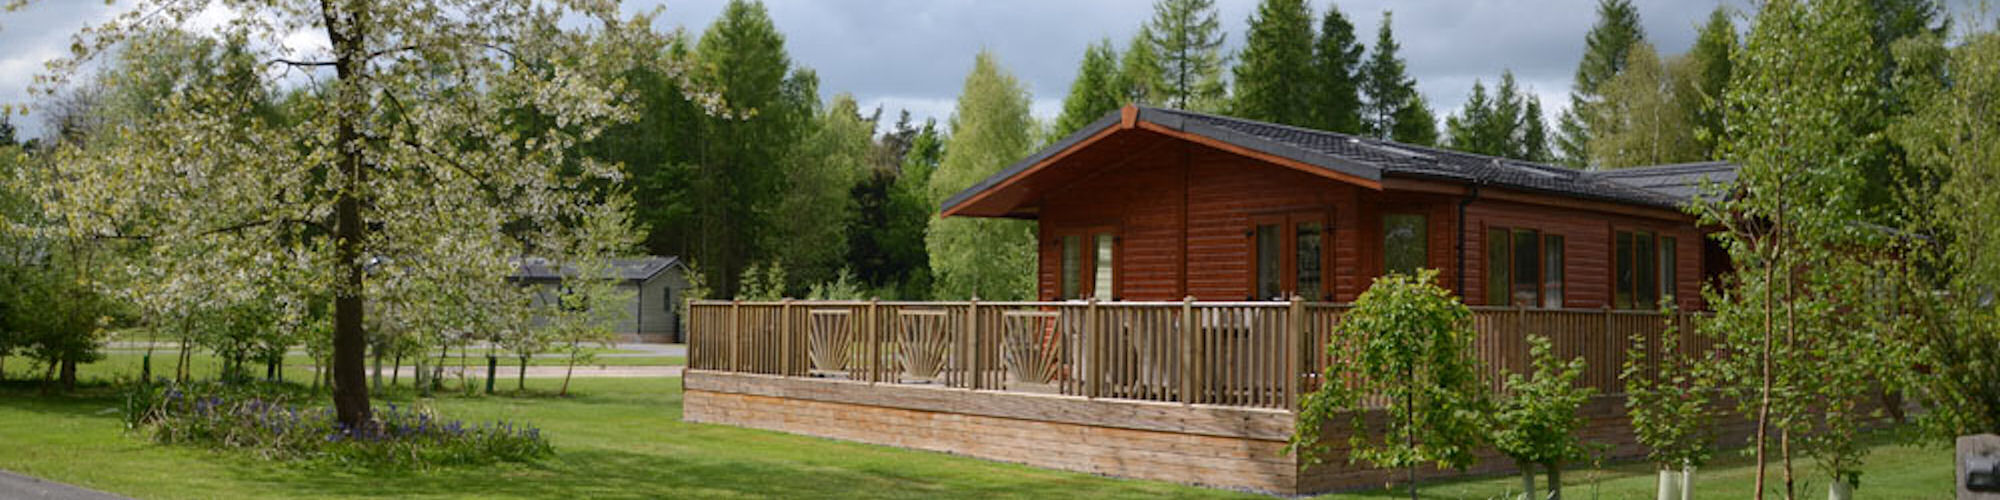 Spacious and secluded holiday homes